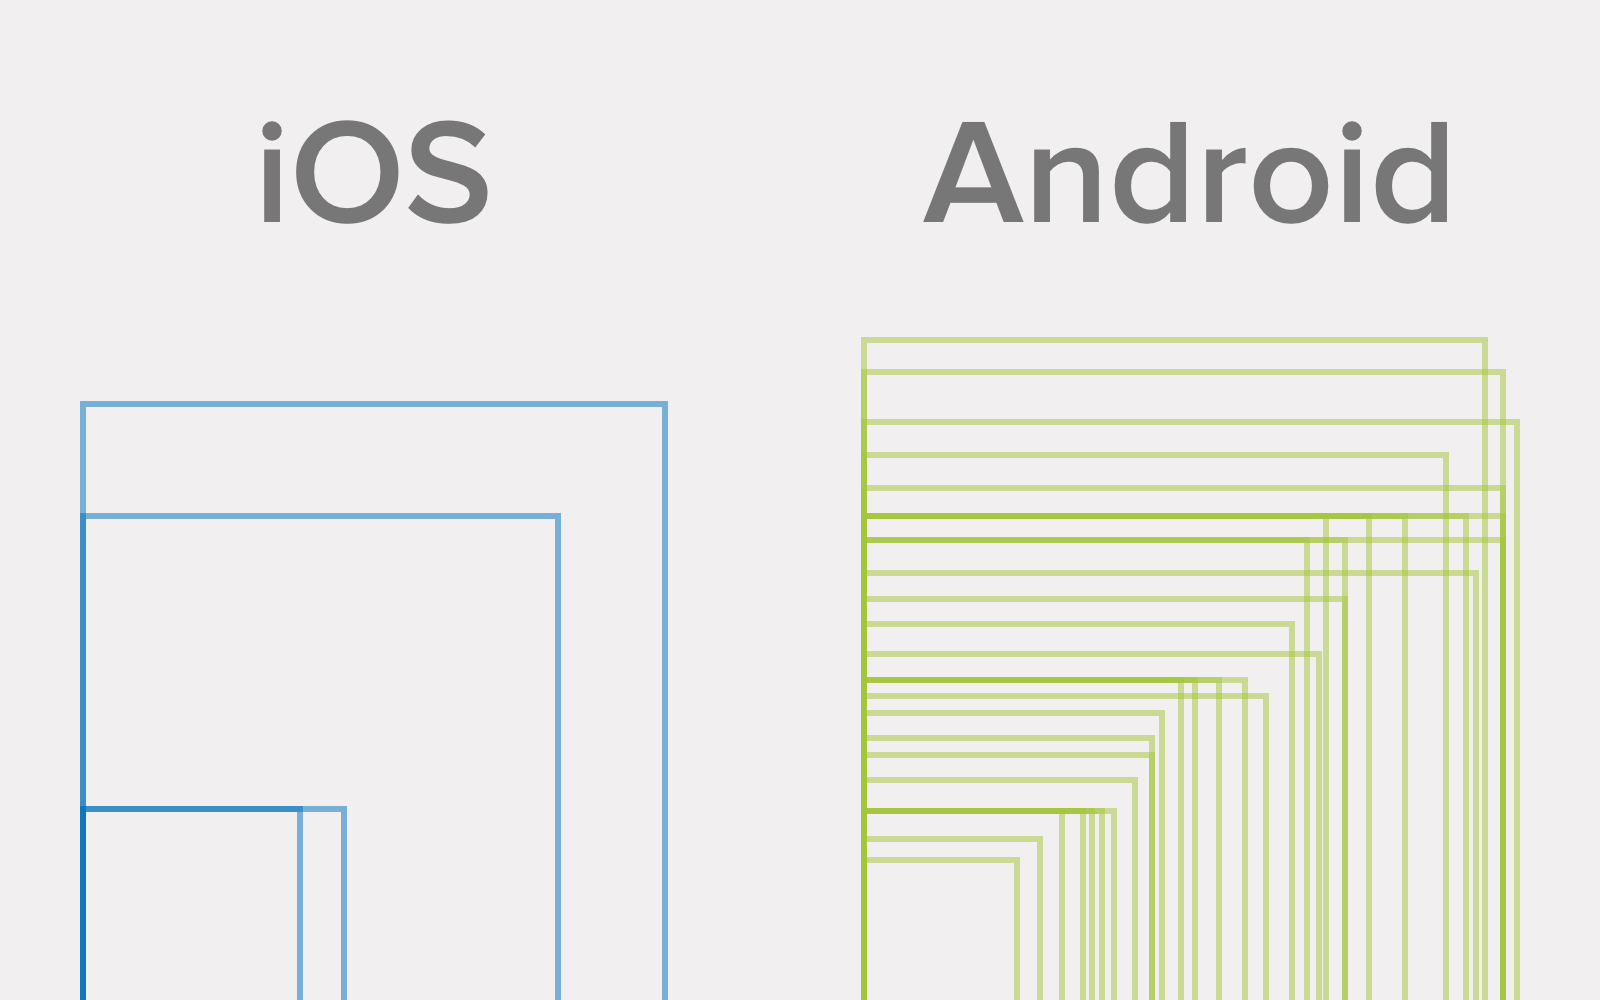 Android vs iOS screen sizes comparison on a scheme